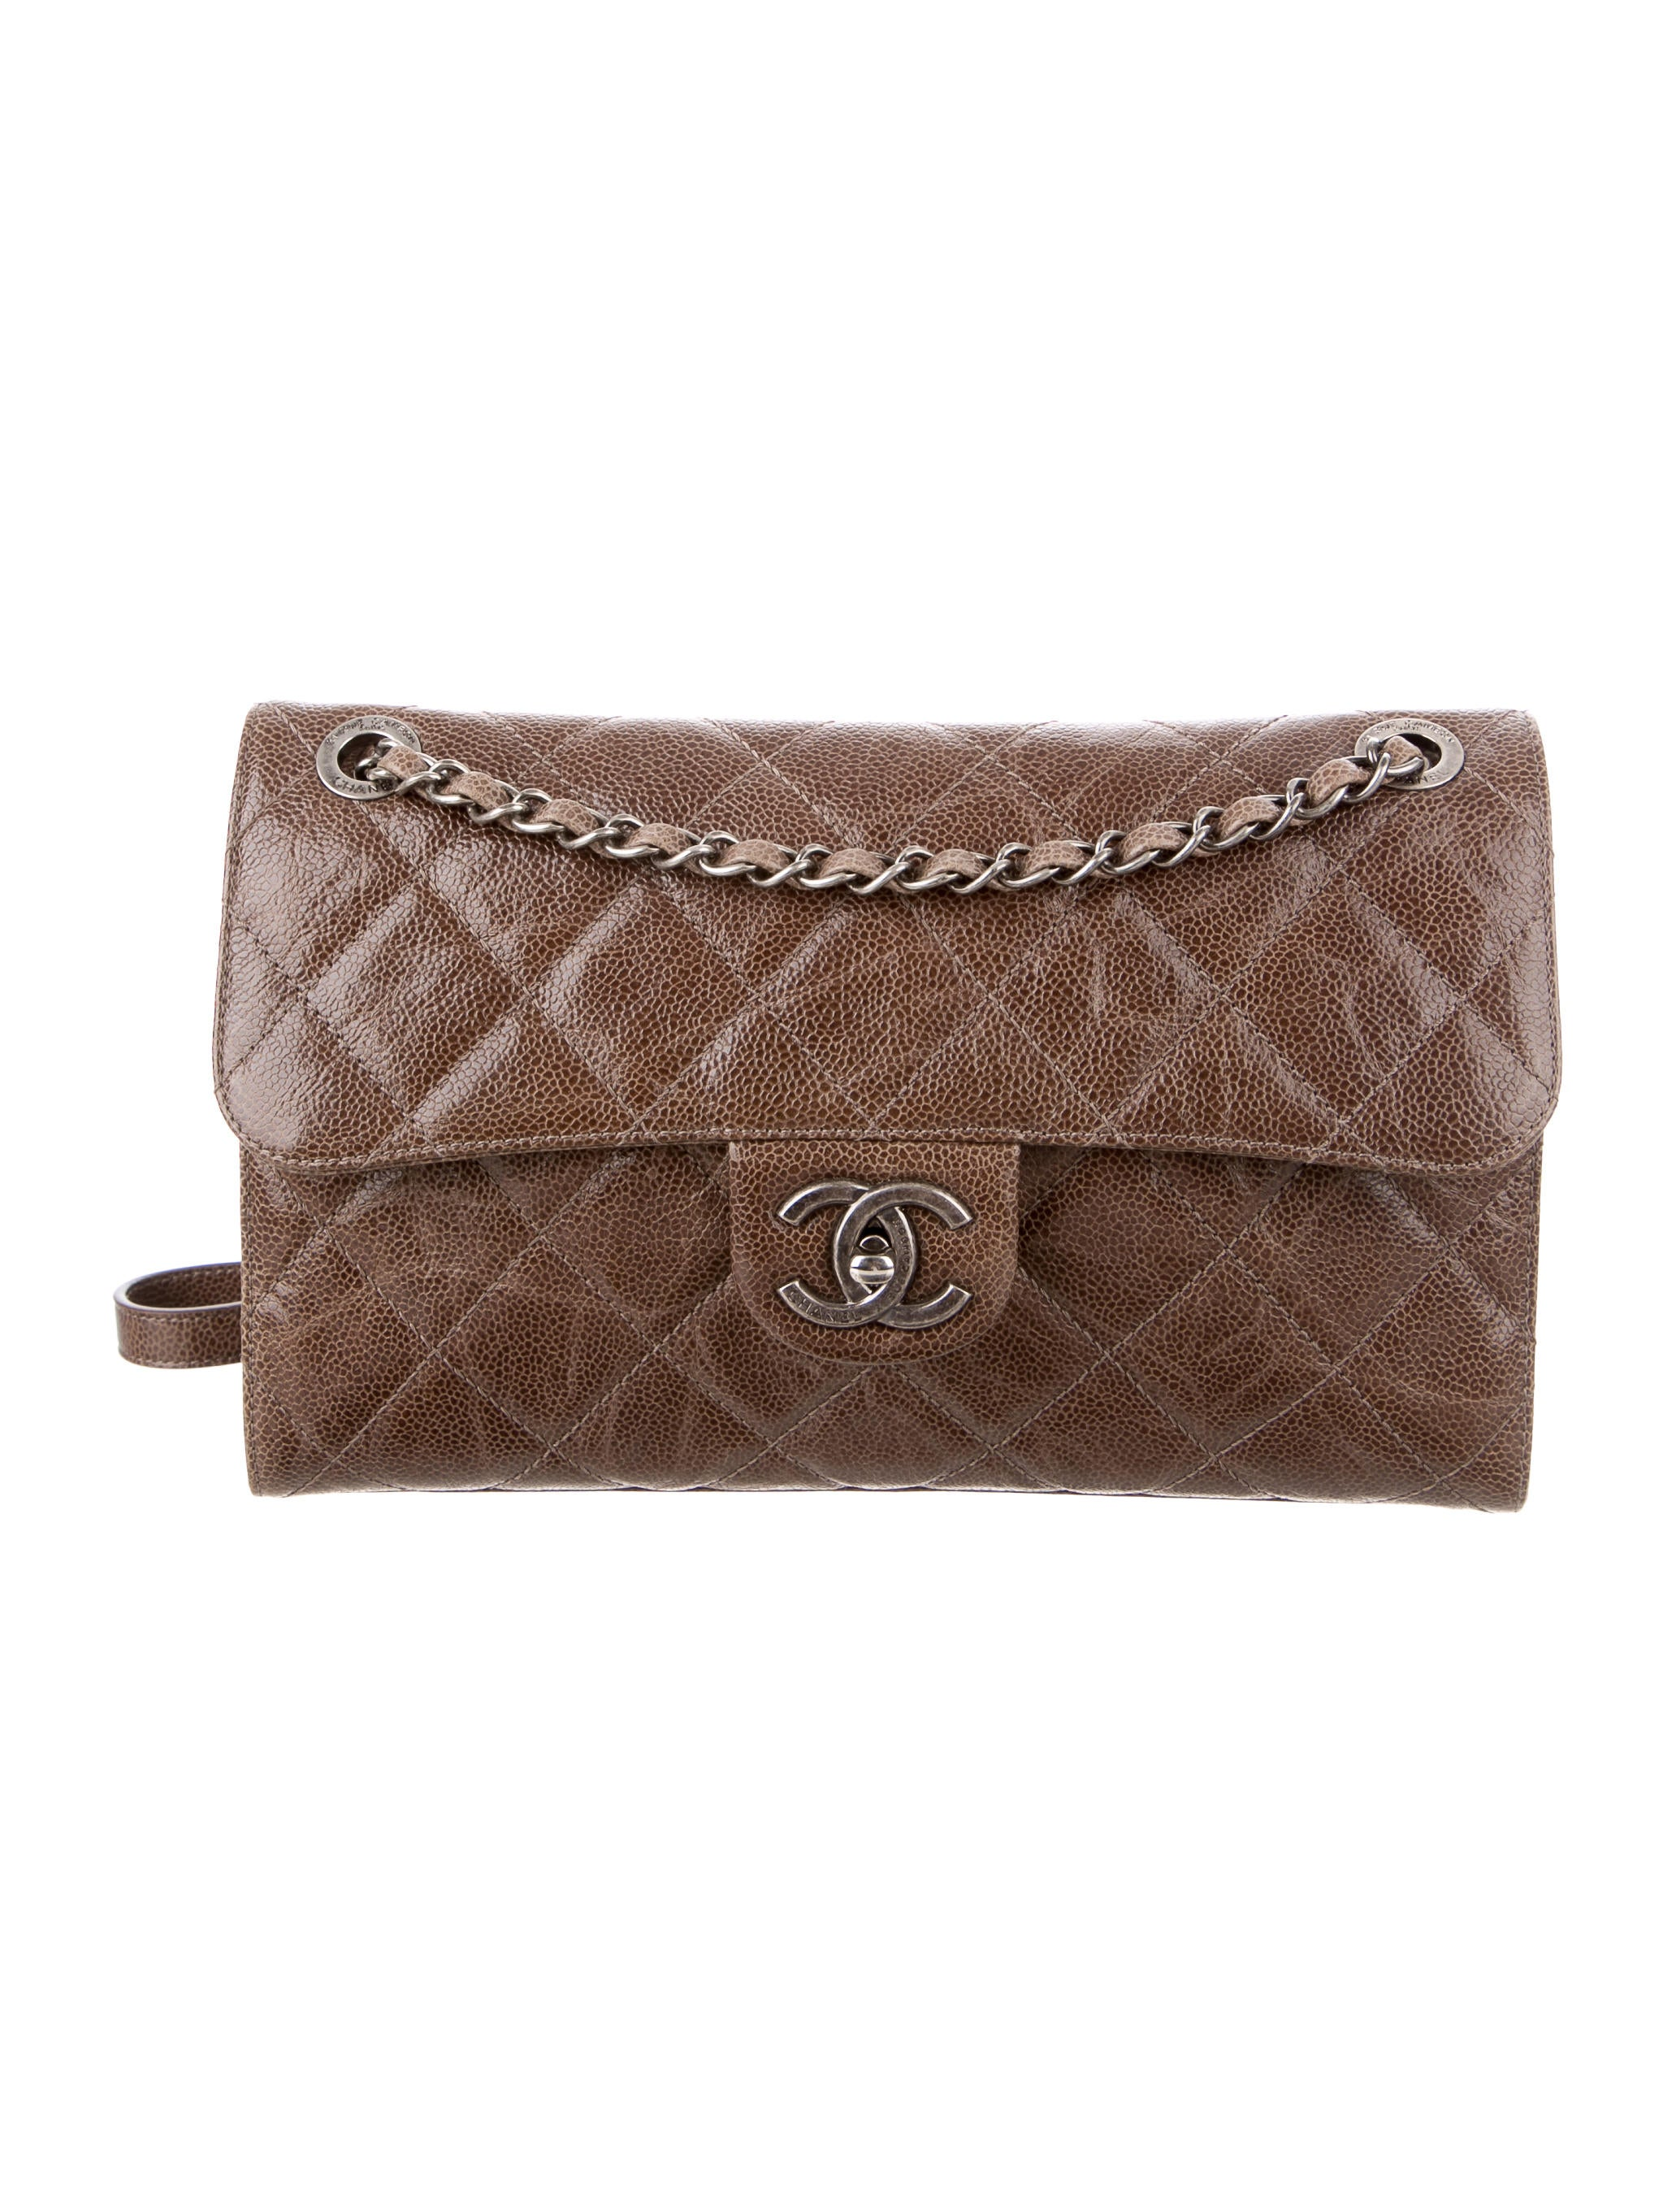 chanel medium cc crave flap bag handbags cha164119